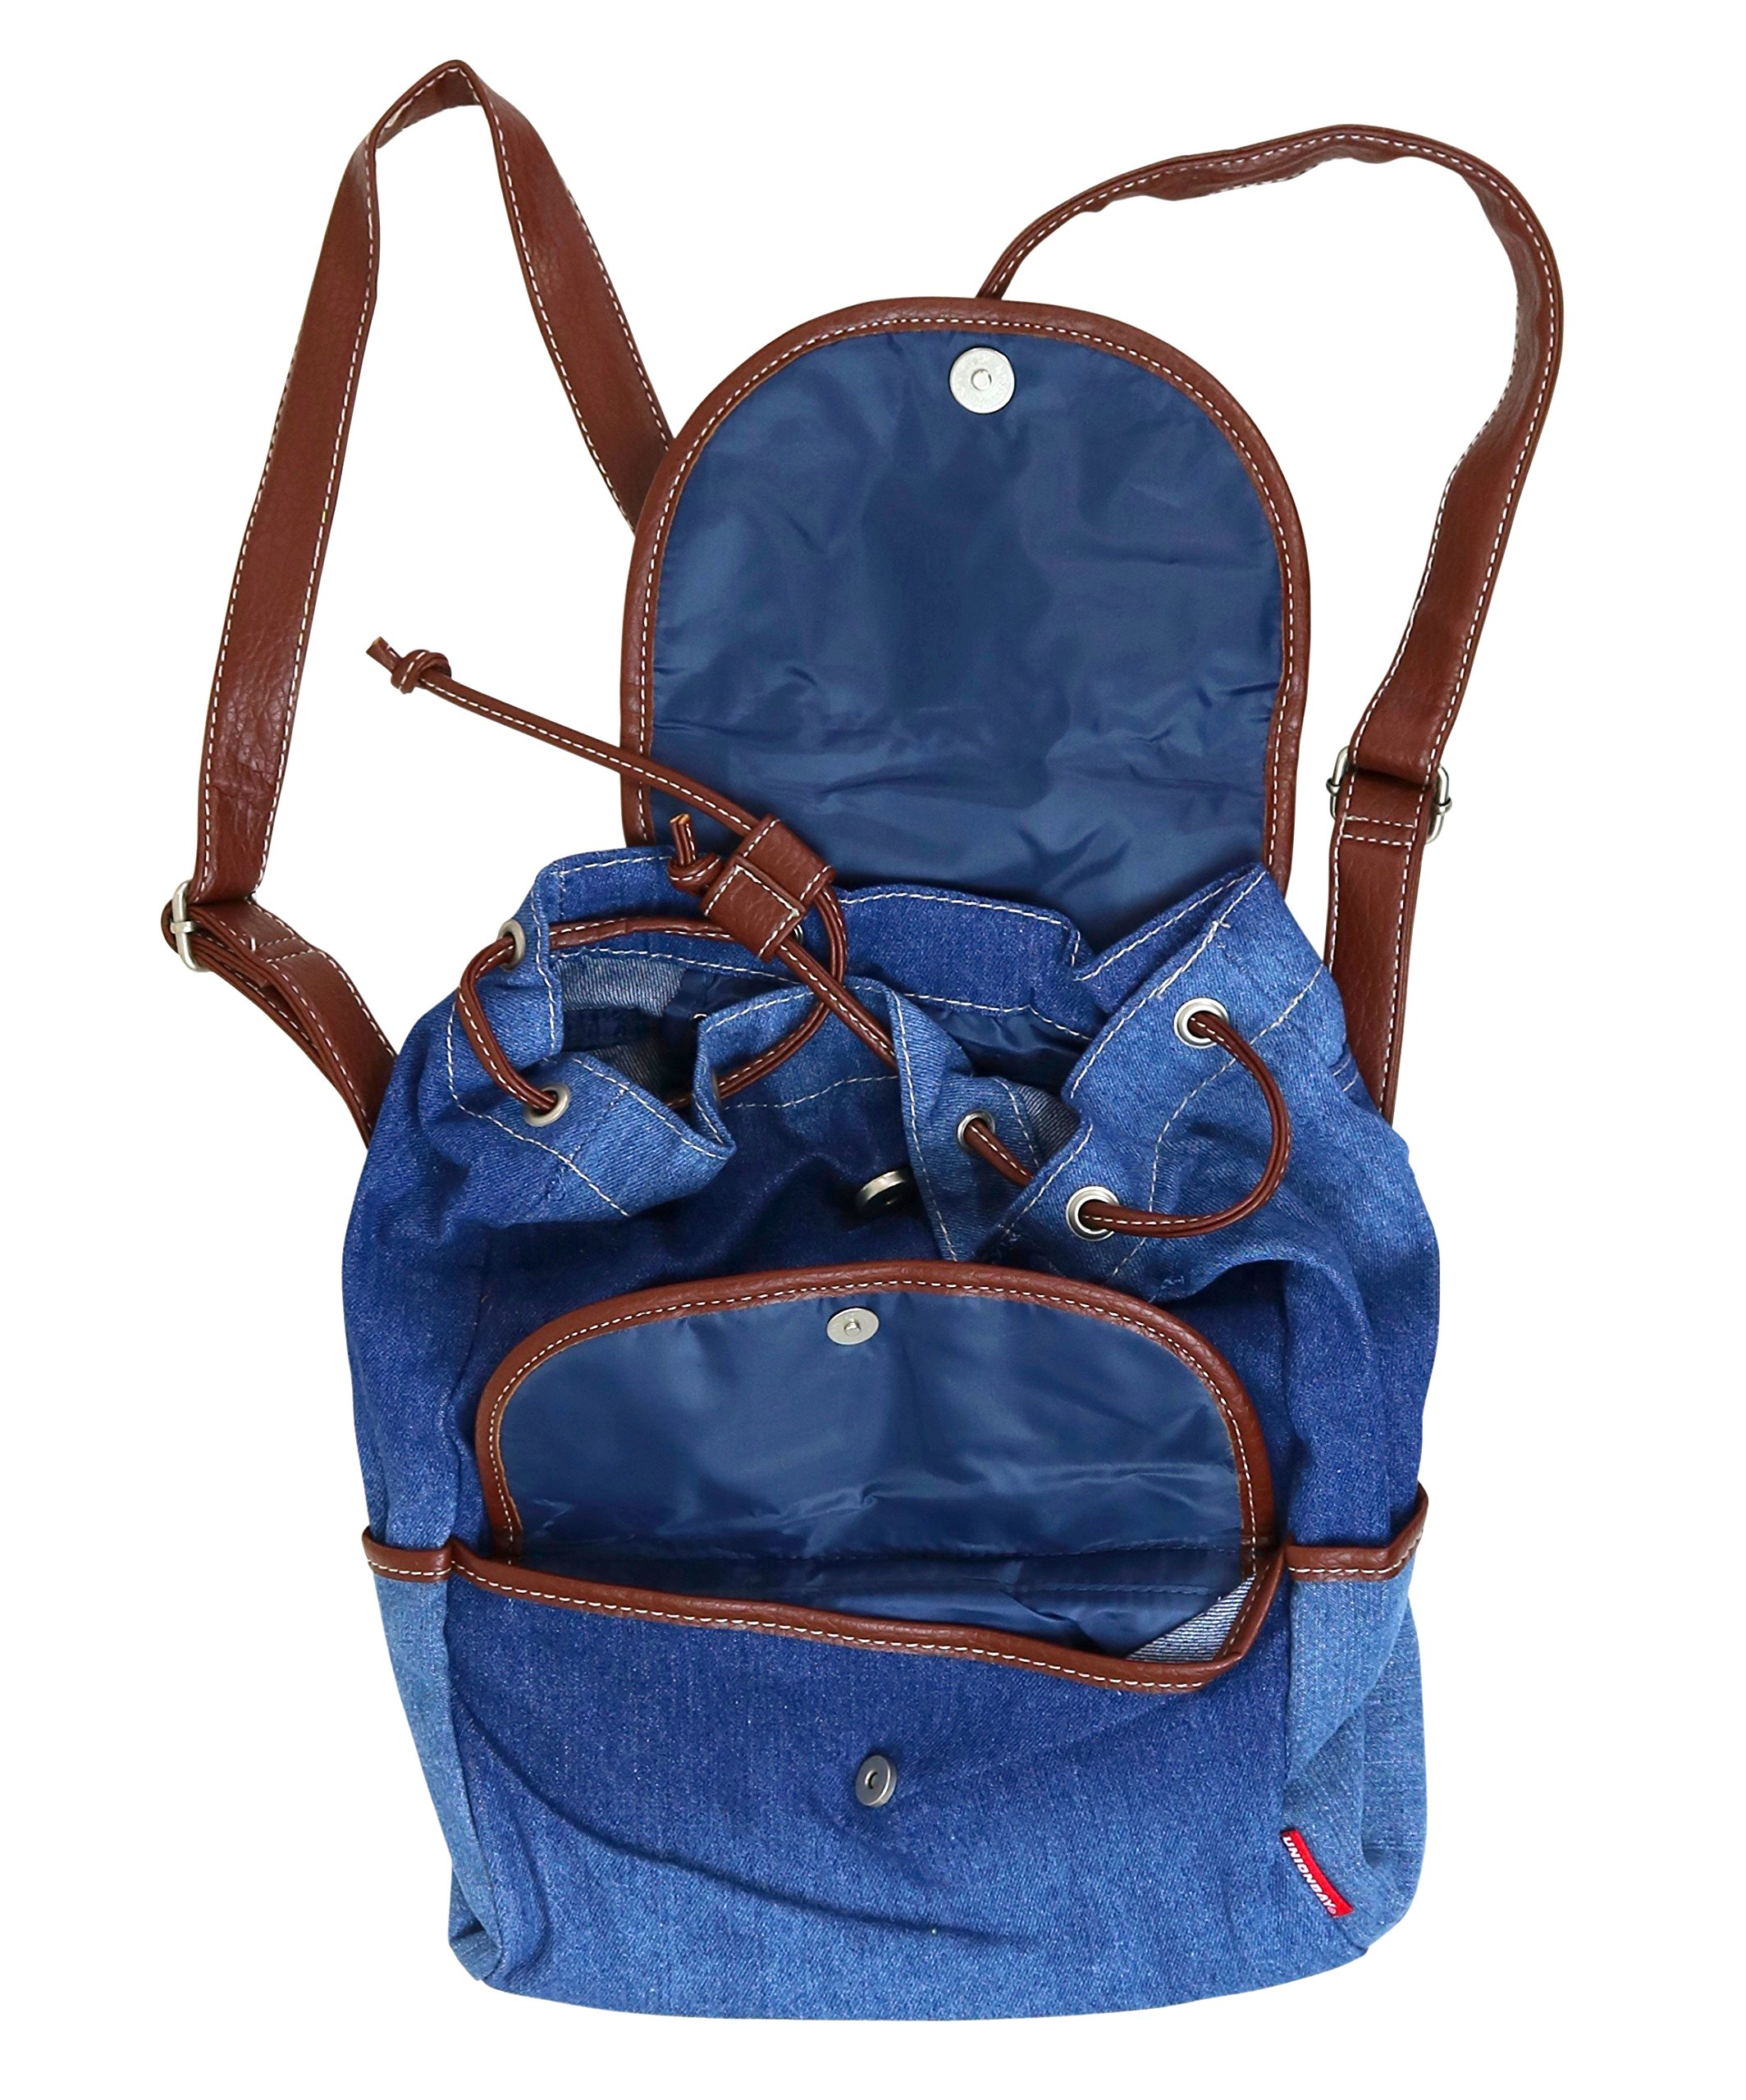 Unionbay Denim Backpack Handbag with Adjustable Faux Leather Straps by UNIONBAY (Image #4)